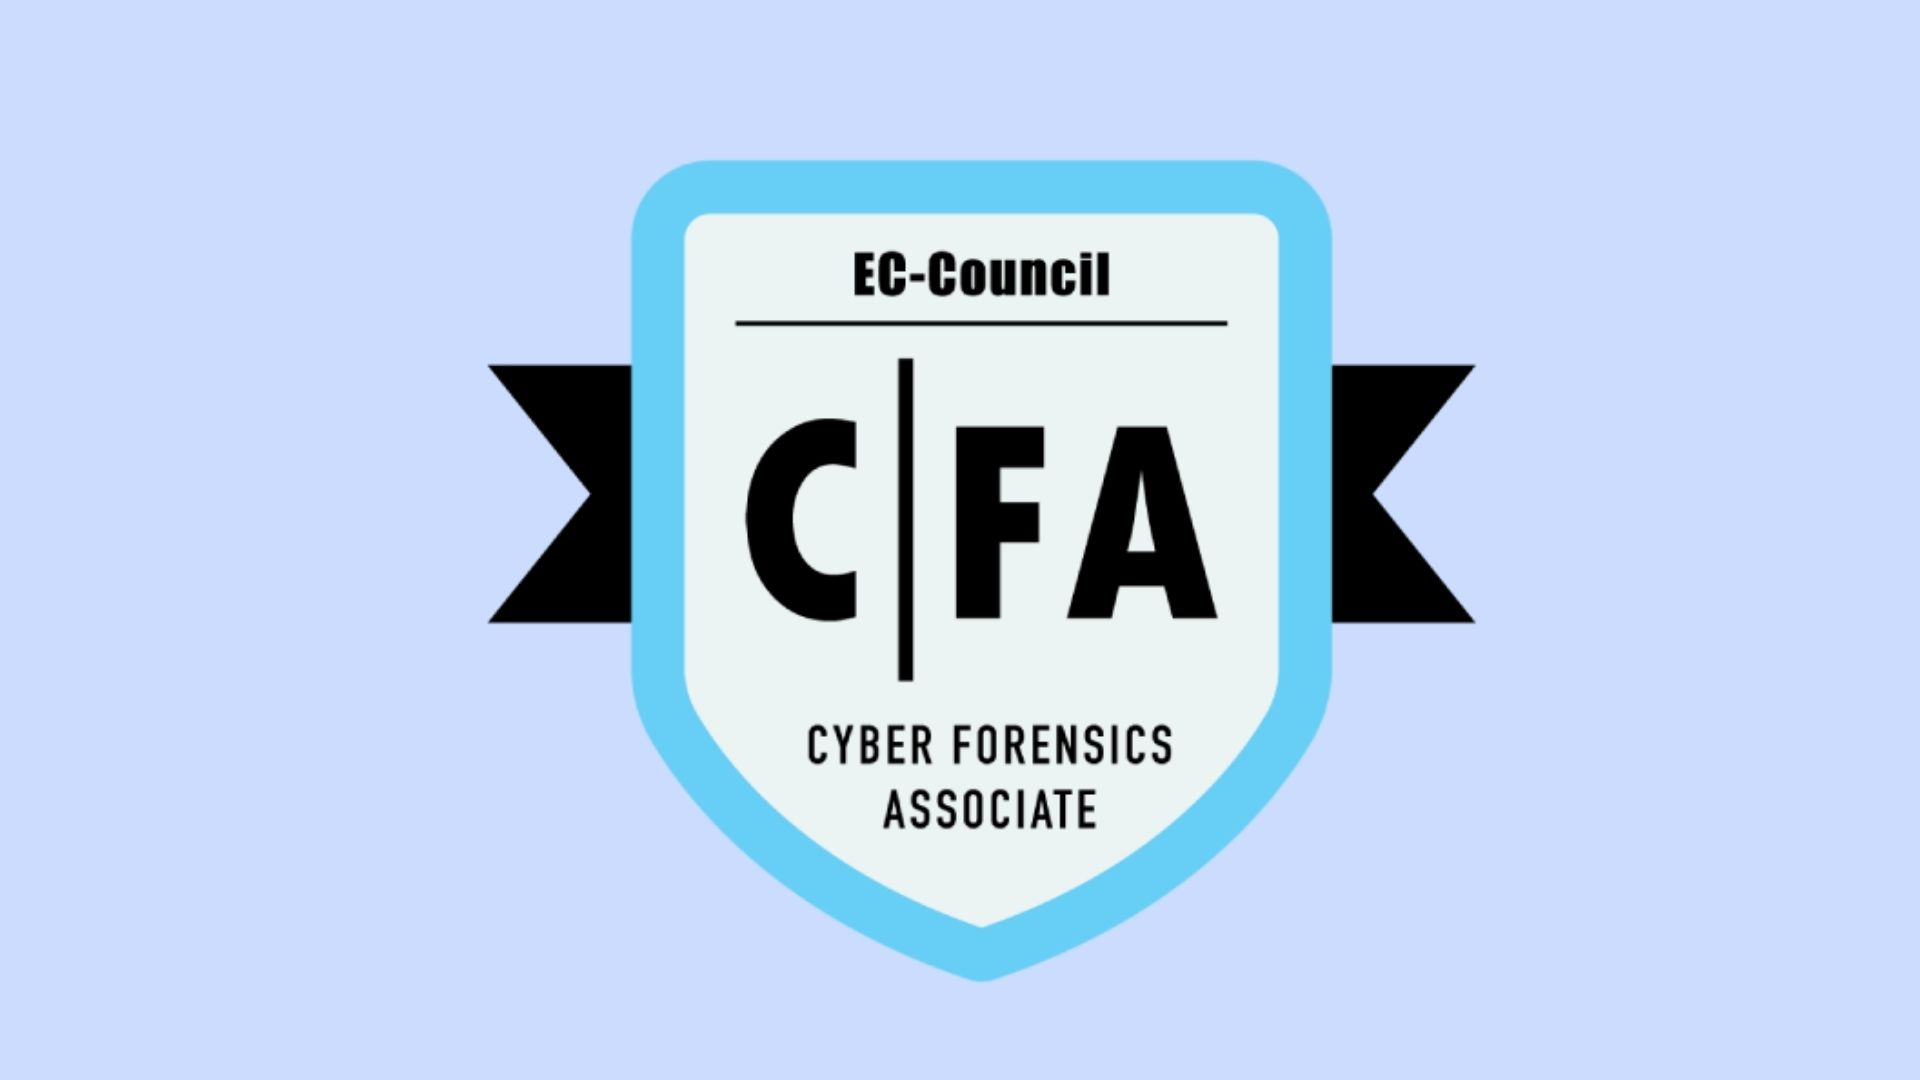 Ethical Hacking Associate